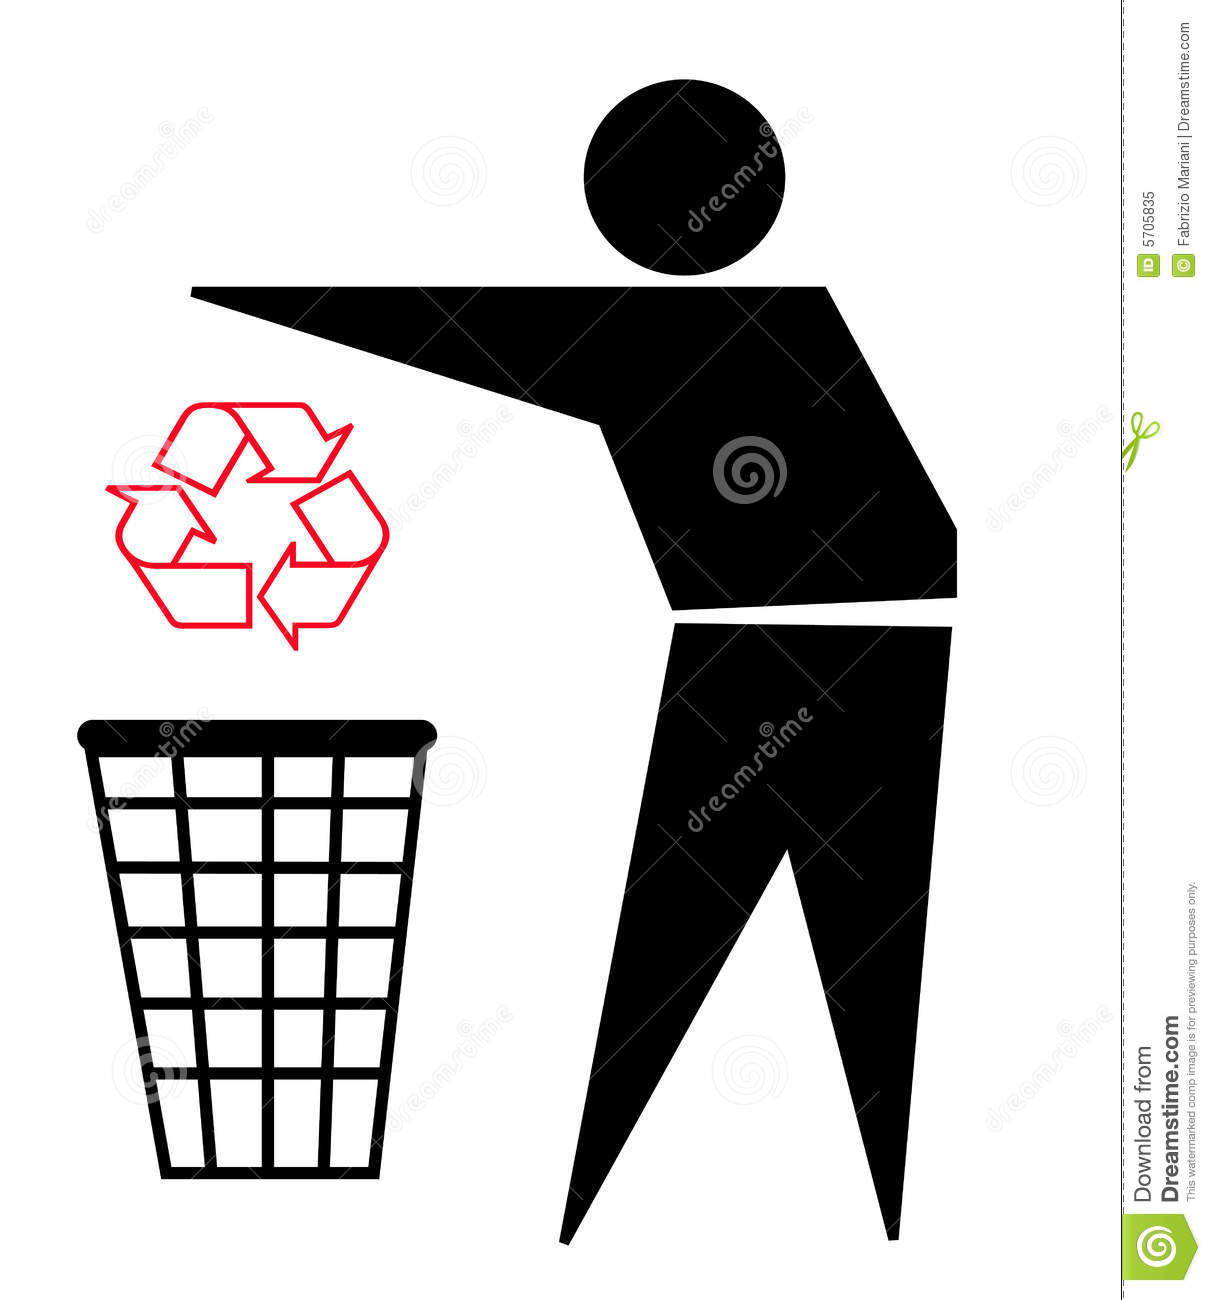 recycle logo and trash royalty free stock photo image recycle logo vector cdr recycle logo vector file